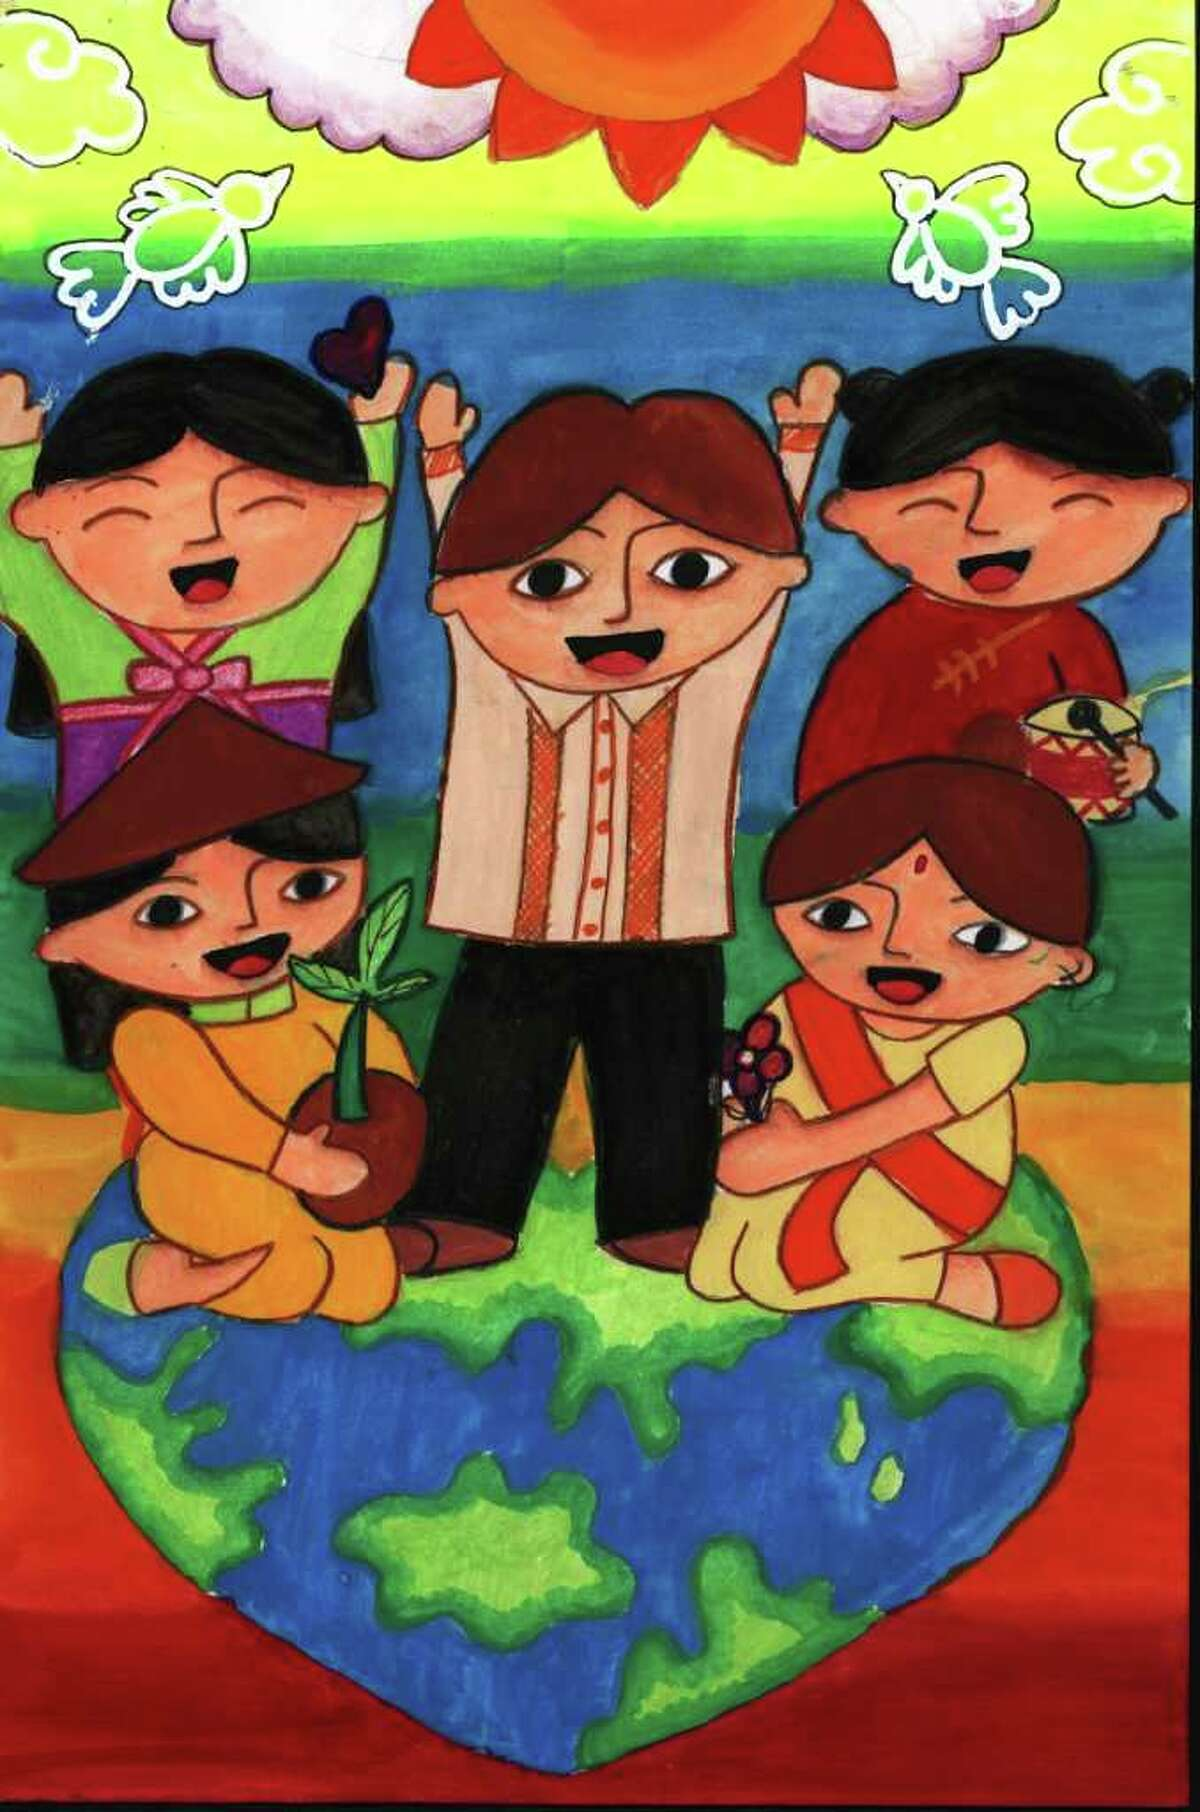 """GO! WORLD AWARENESS CHILDREN'S MUSEUM """"Take Care of Our World"""" by Jerrika C. Shi (age 12, Philippines) is among the works in """"Our World: Thinking Green"""" at the Go! World Awareness Children?s Museum in Glens Falls through April 29."""